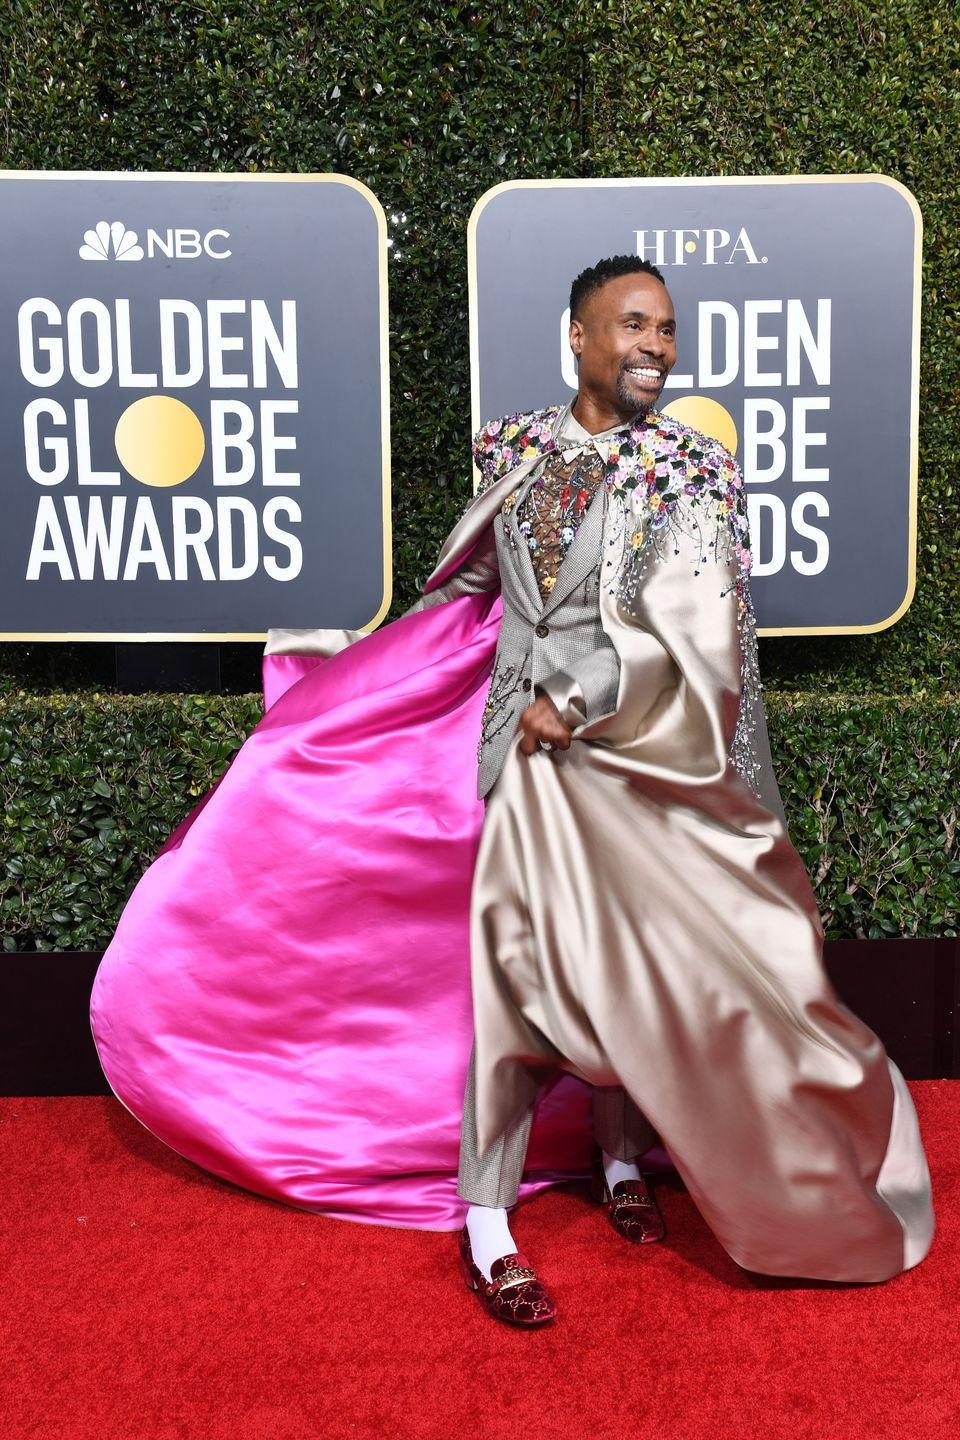 <p>Porter at the 76th annual Golden Globe Awards in a gray suit and cape with floral appliqués, and red velvet loafers by Gucci. </p>